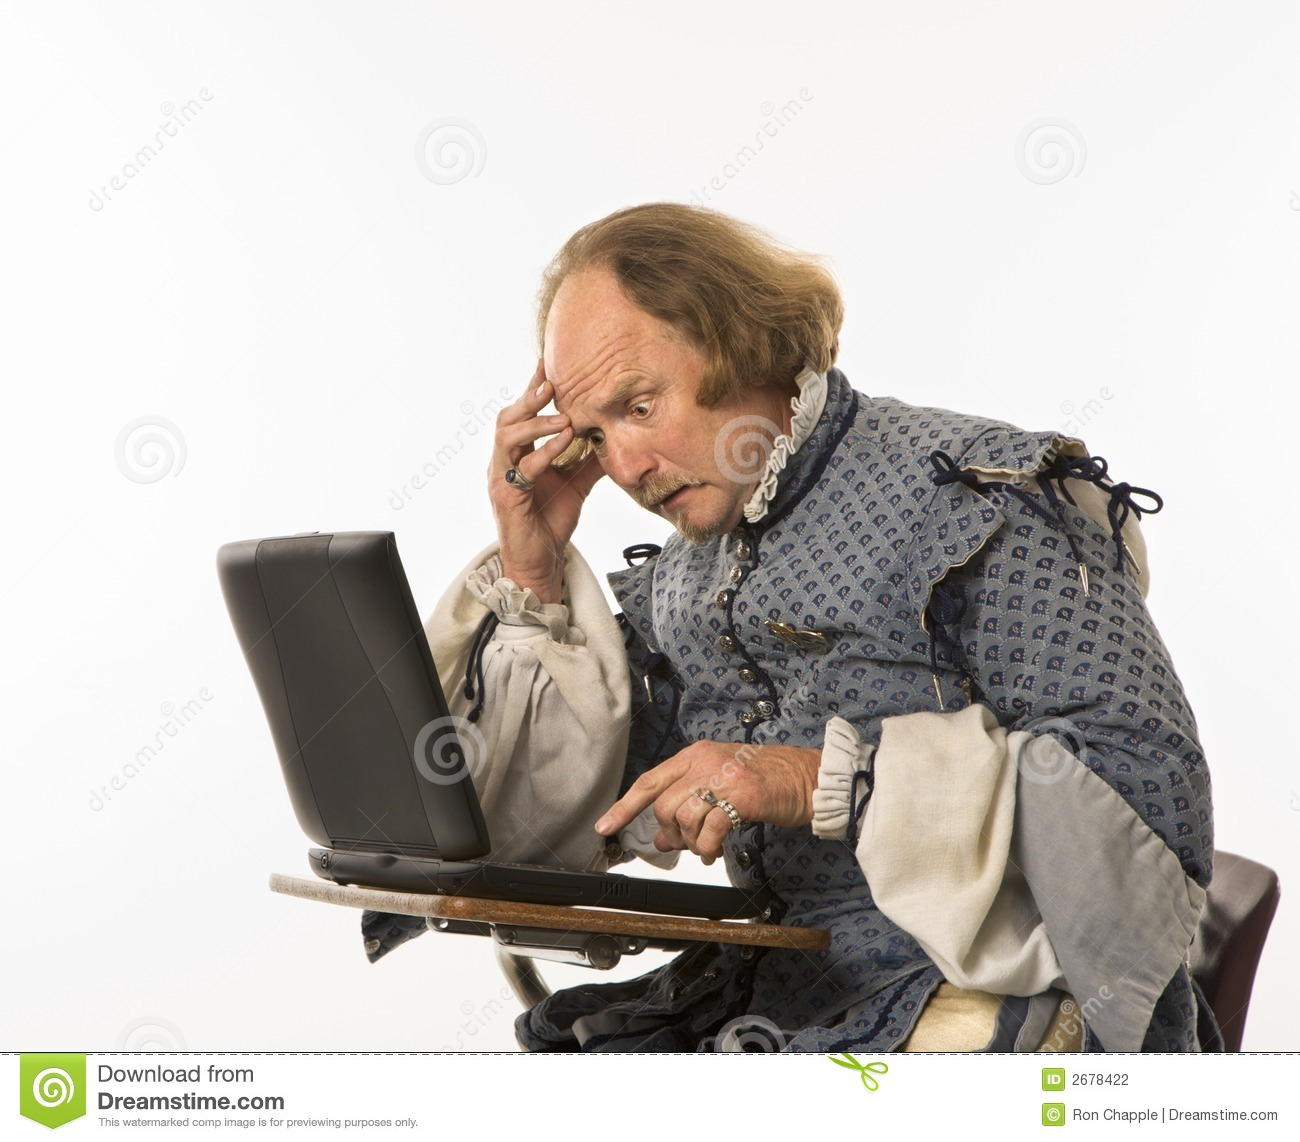 Citaten Shakespeare Pc : Shakespeare using laptop stock photography image